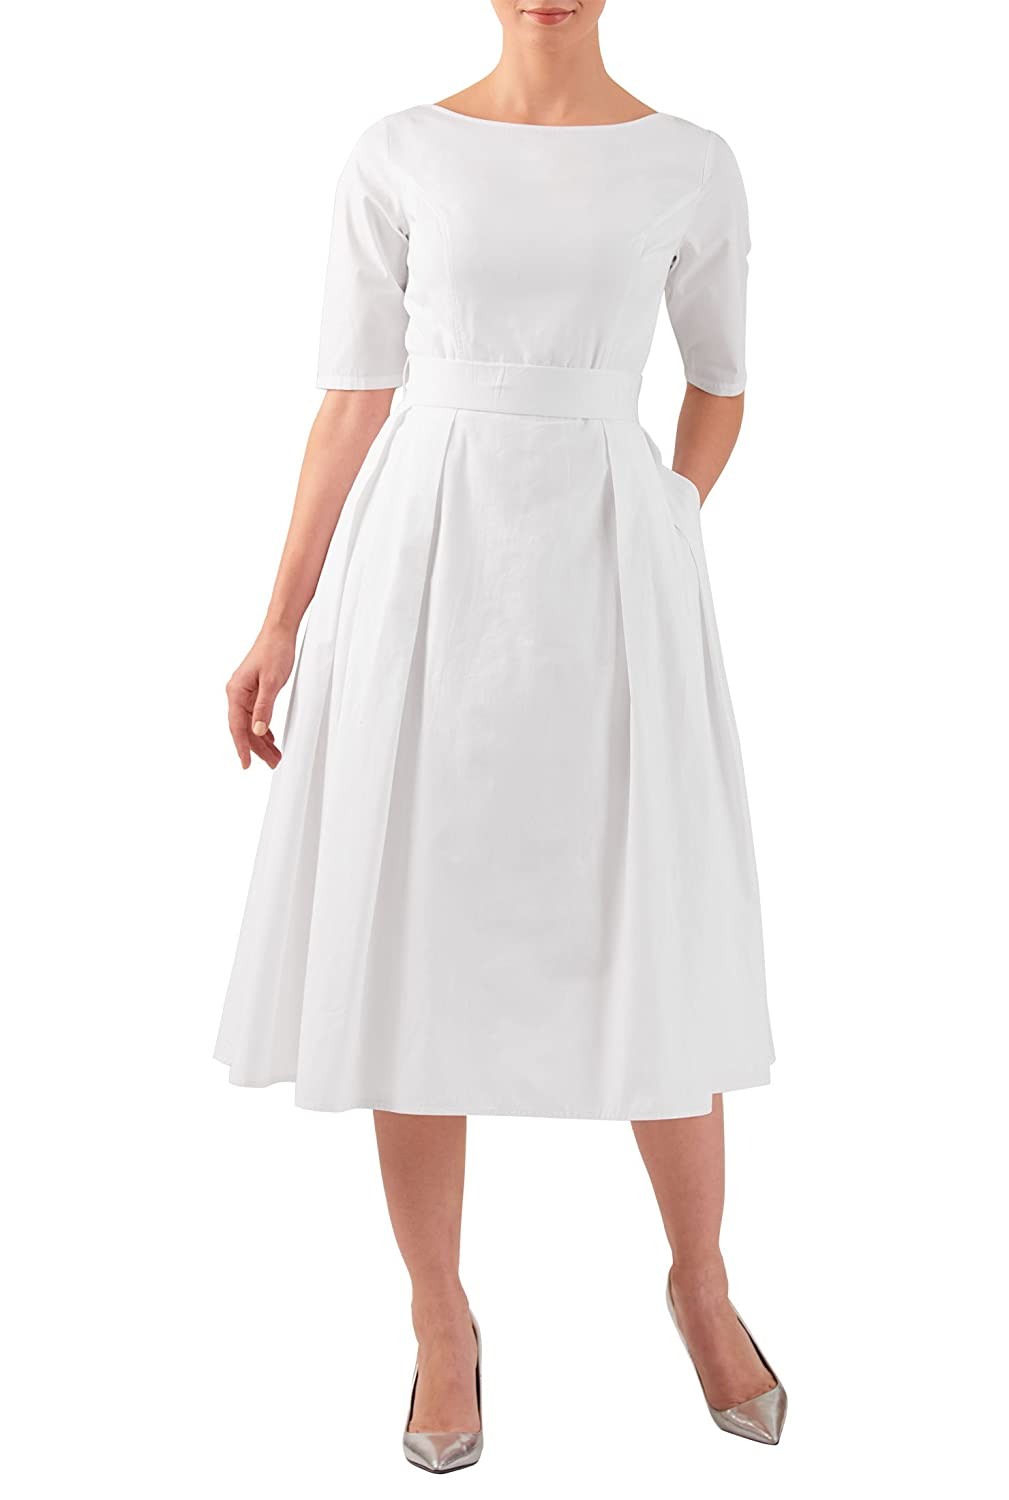 Vintage Inspired Wedding Dress | Vintage Style Wedding Dresses eShakti Womens Quincy dress $49.95 AT vintagedancer.com